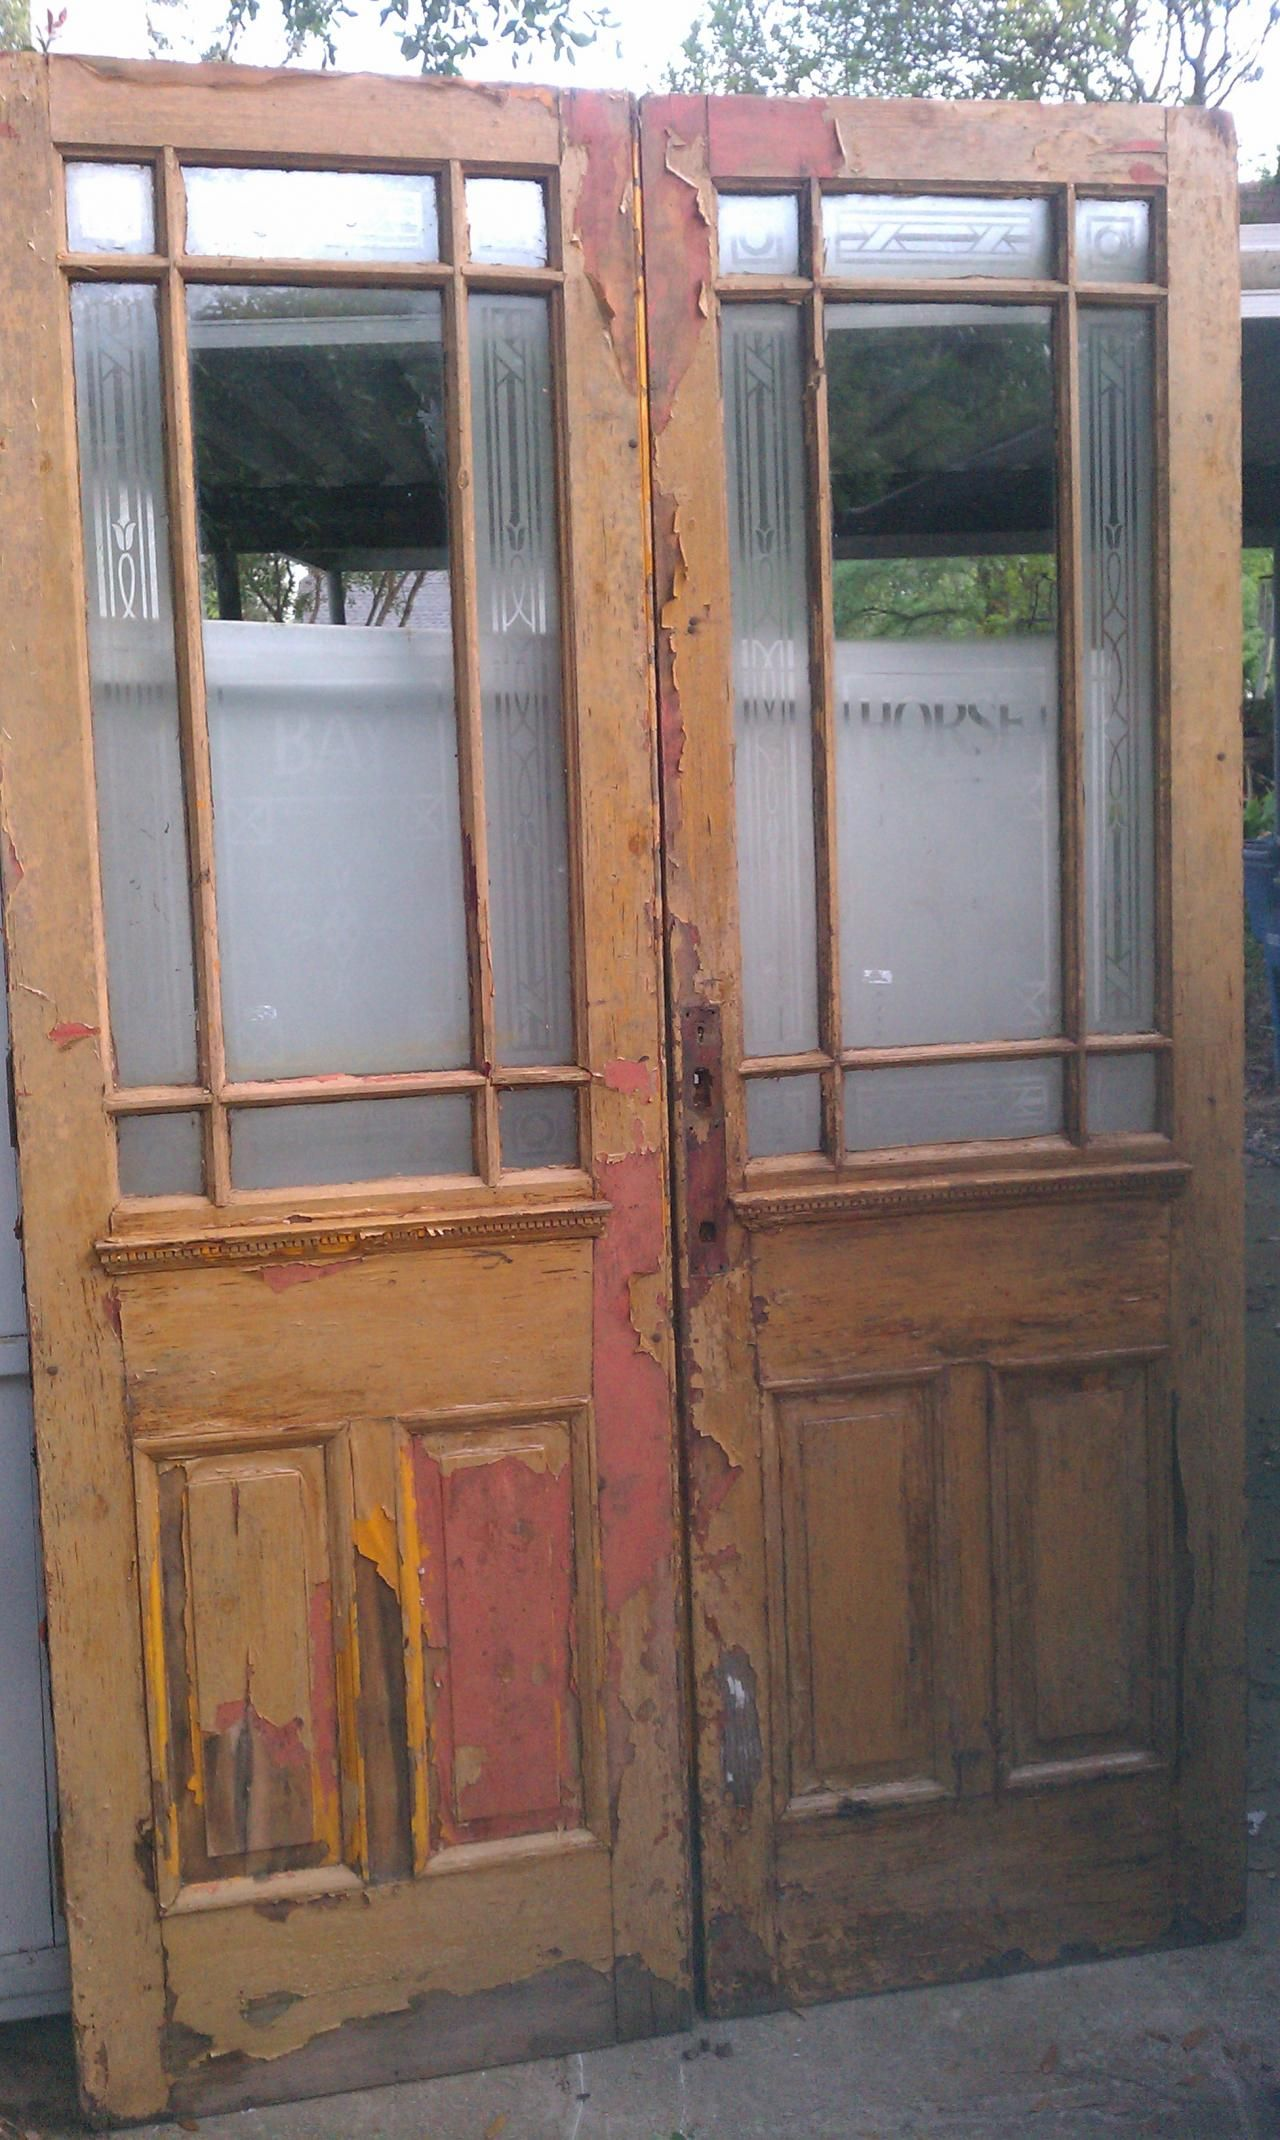 Old Is Better Than New - Antique Architectural Old Wood & Glass Doors from  Texas. - Www.old-sa.com - Reclaimed Used Old Vintage Antique Texas